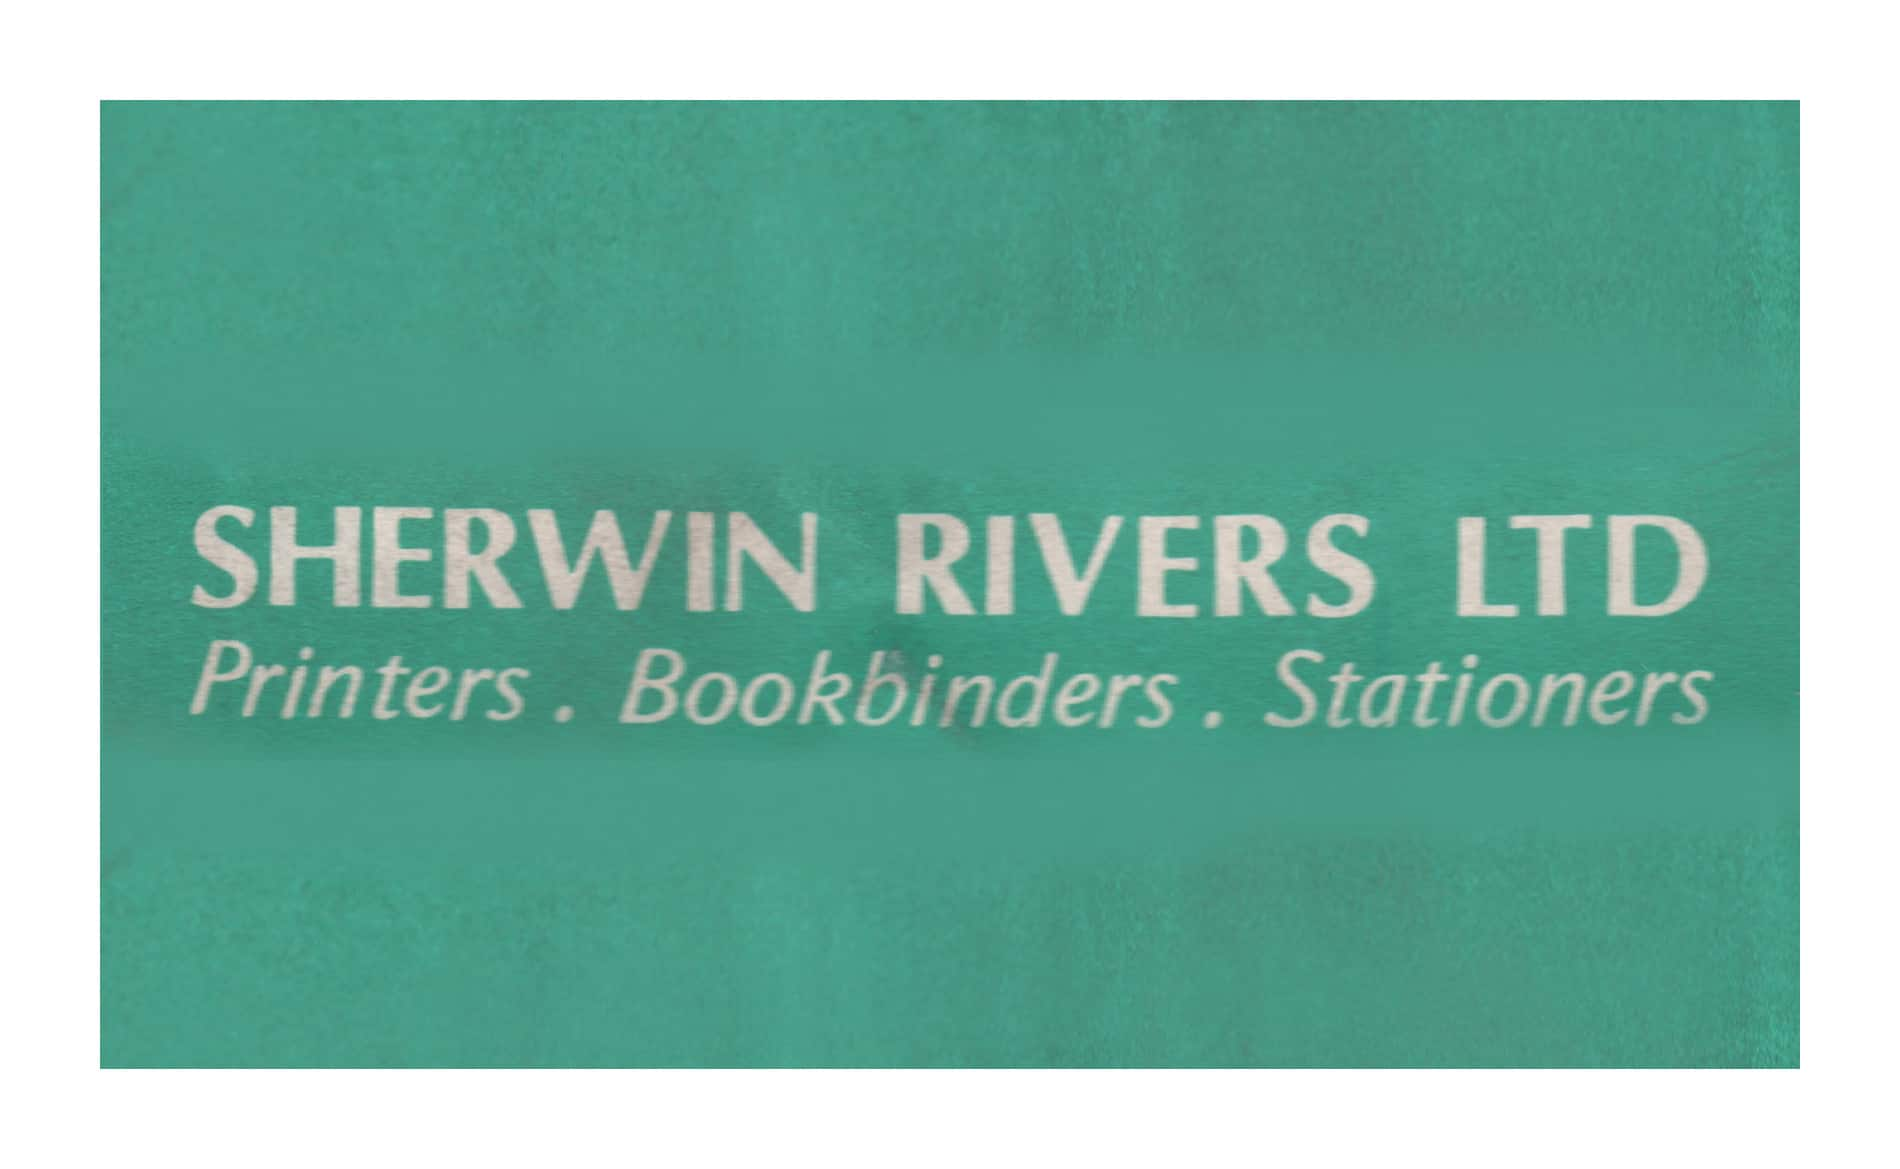 Graphic Design and Branding Services Sherwin Rivers Ltd - Logo Design 1960's